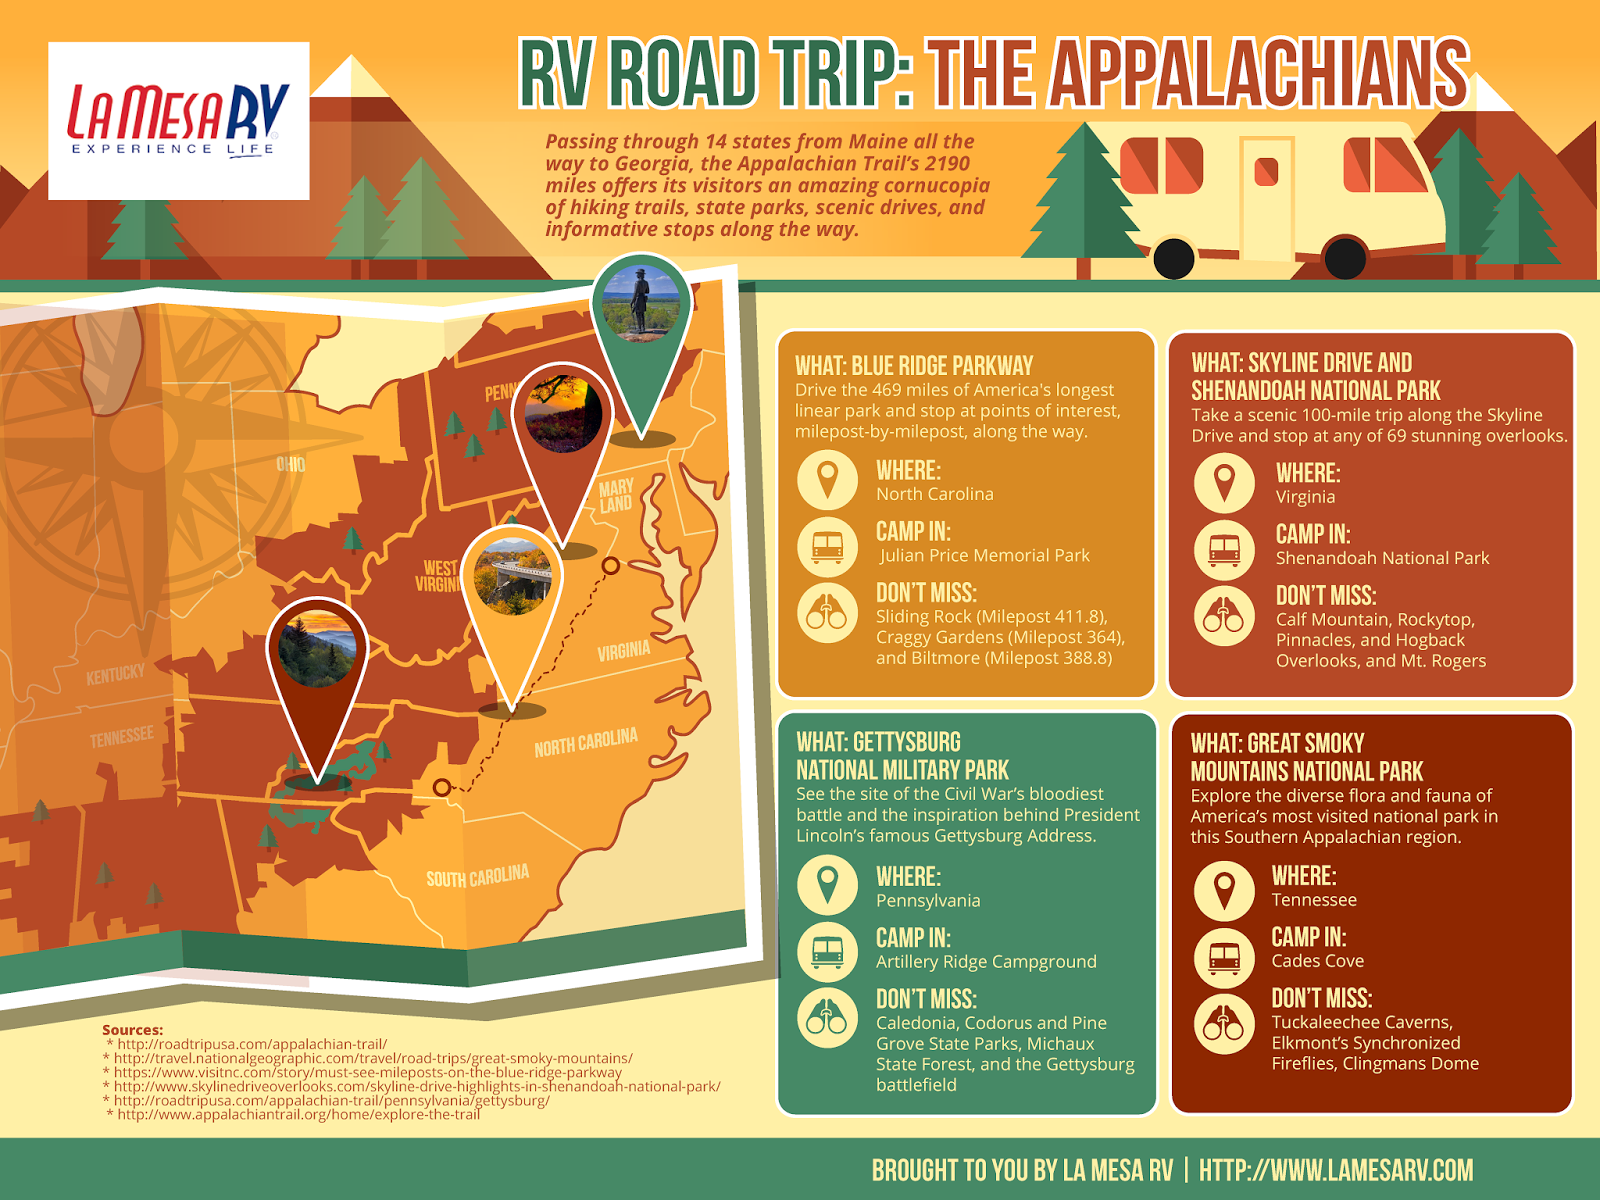 RV Road Trip: The Appalachians [GRAPHIC]